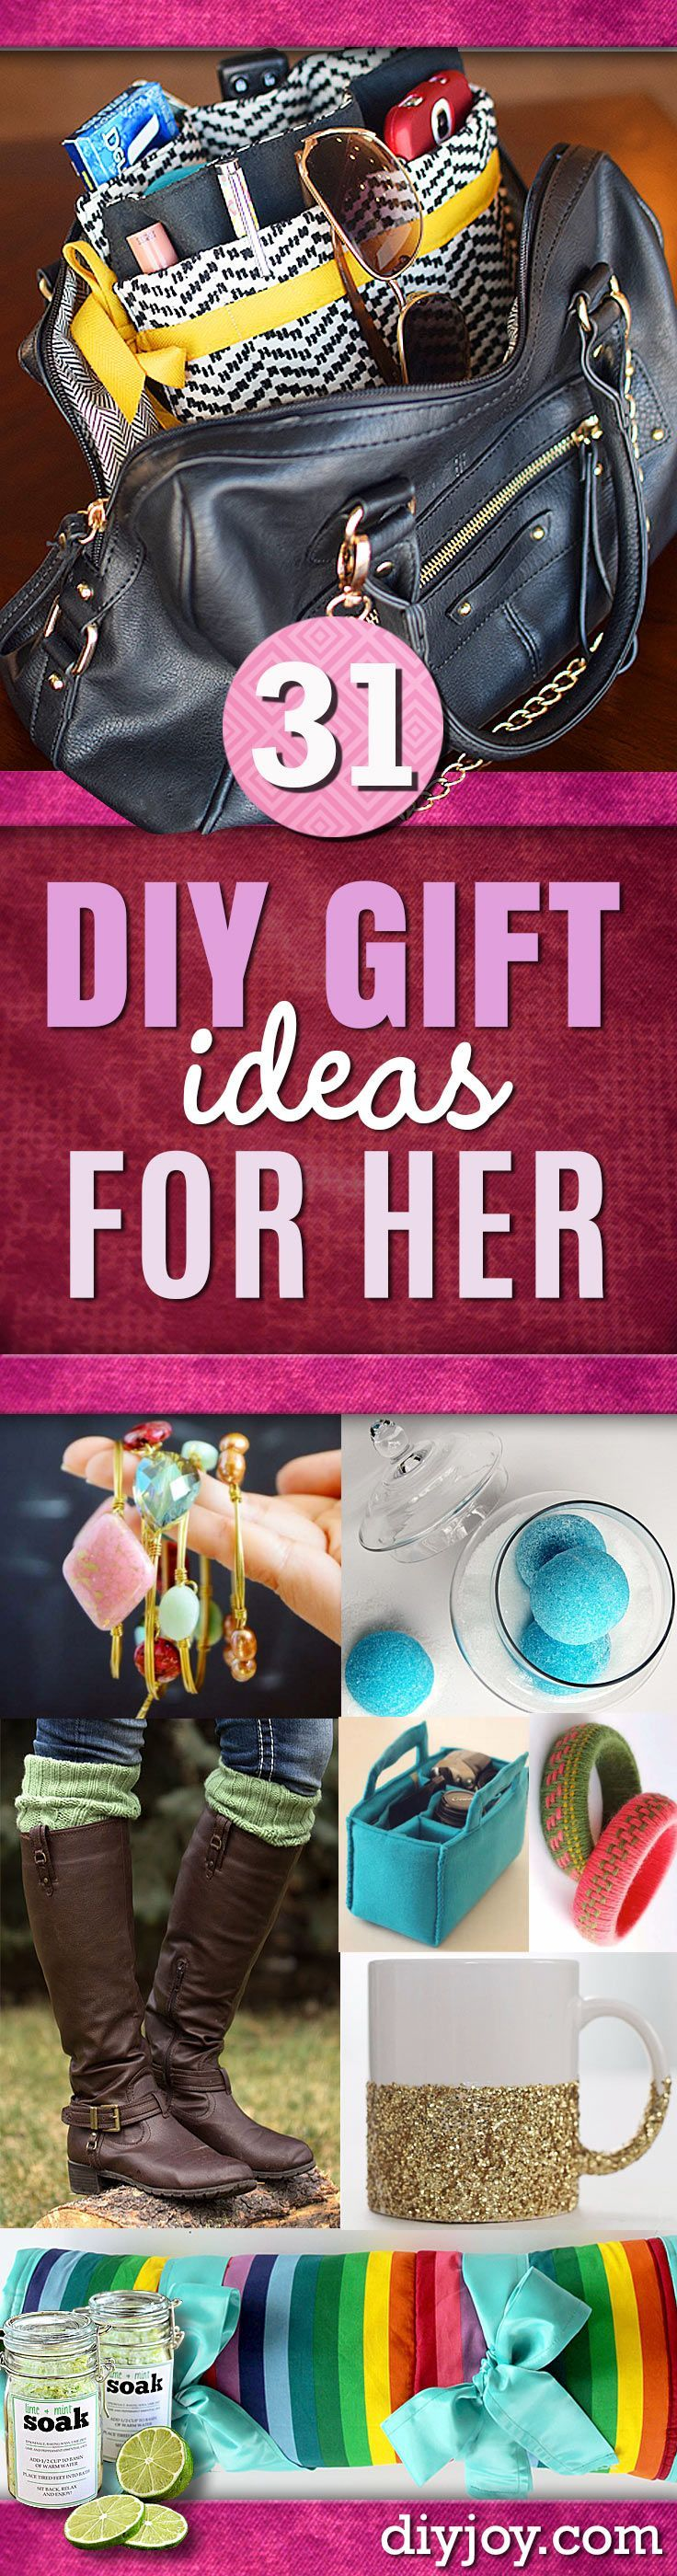 17 Best Images About Diy Gifts For Her On Pinterest